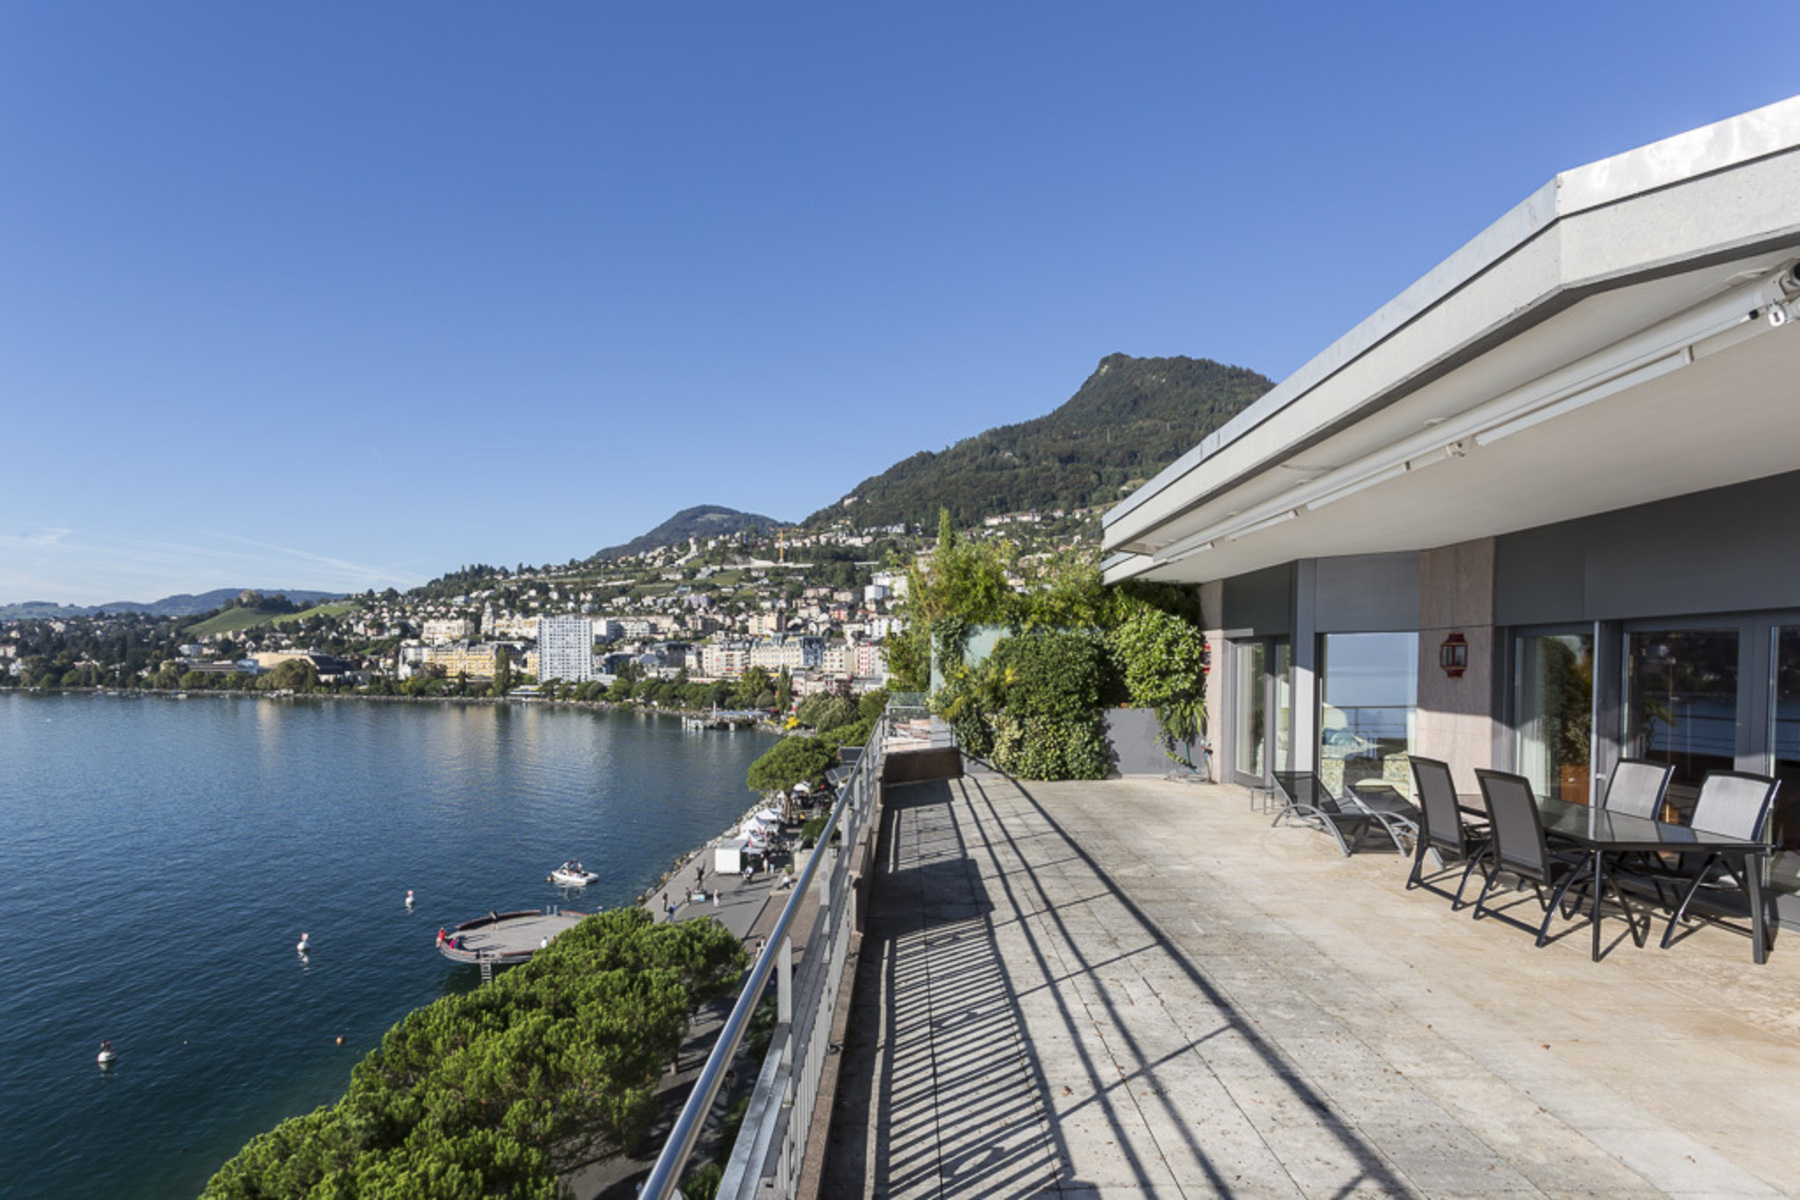 Condominium for Sale at Splendid deluxe waterfront 4.5 room loft apartment Montreux Montreux, Vaud 1820 Switzerland